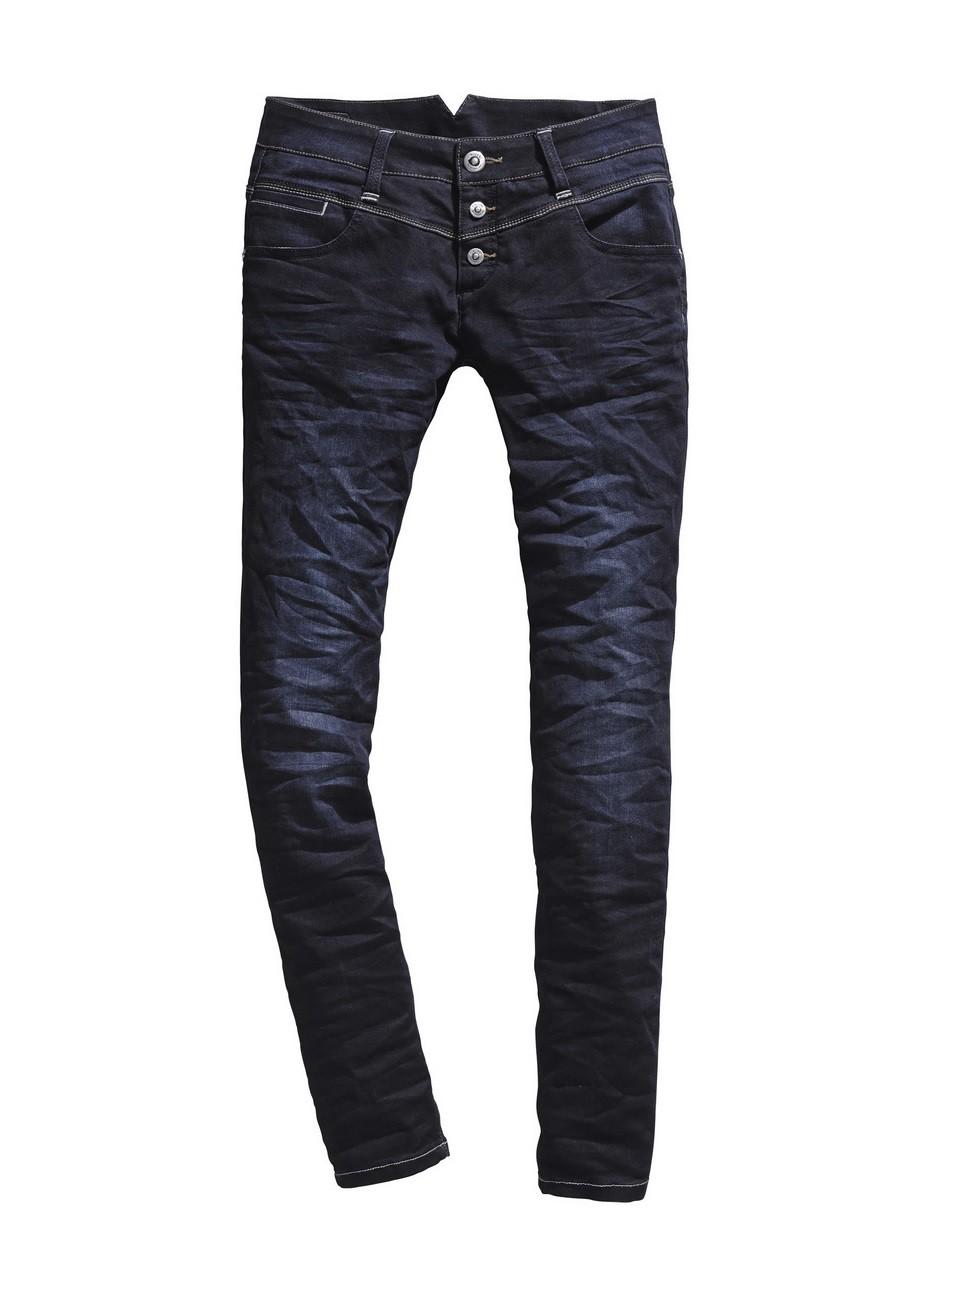 Timezone Damen Jeans New KairinaTZ - Slim Fit - Noble Blue Wash